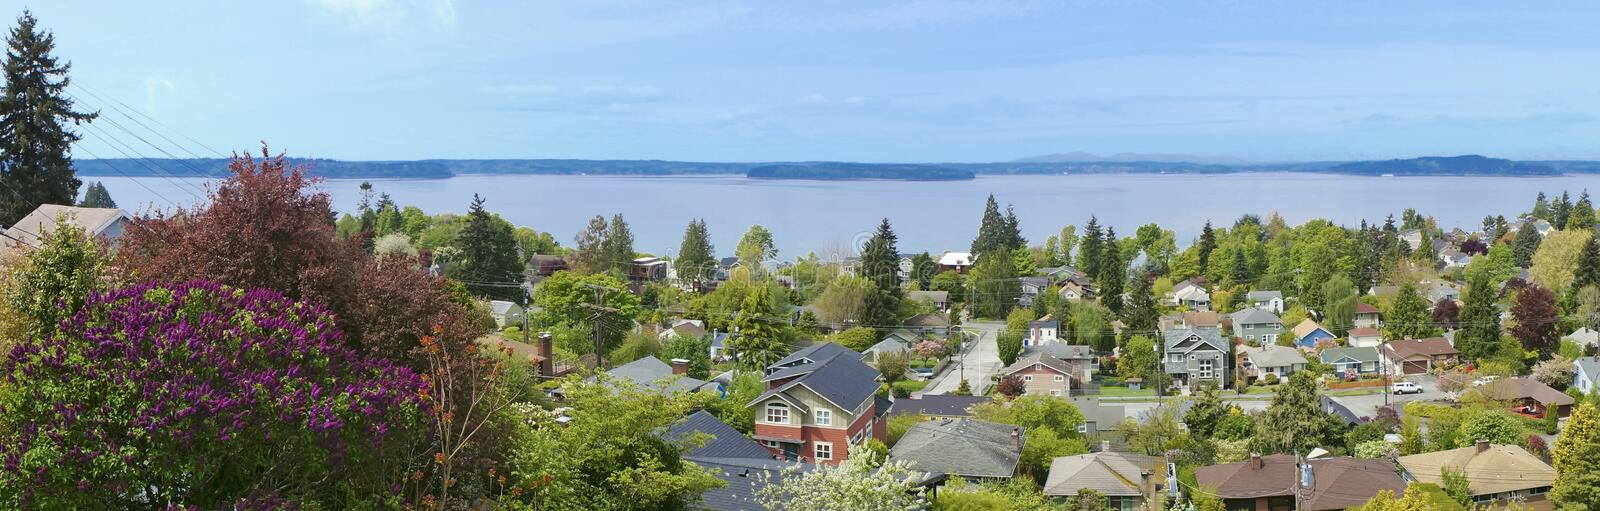 Vista sobre o neighboorhood em Seattle ocidental. WA. imagem de stock